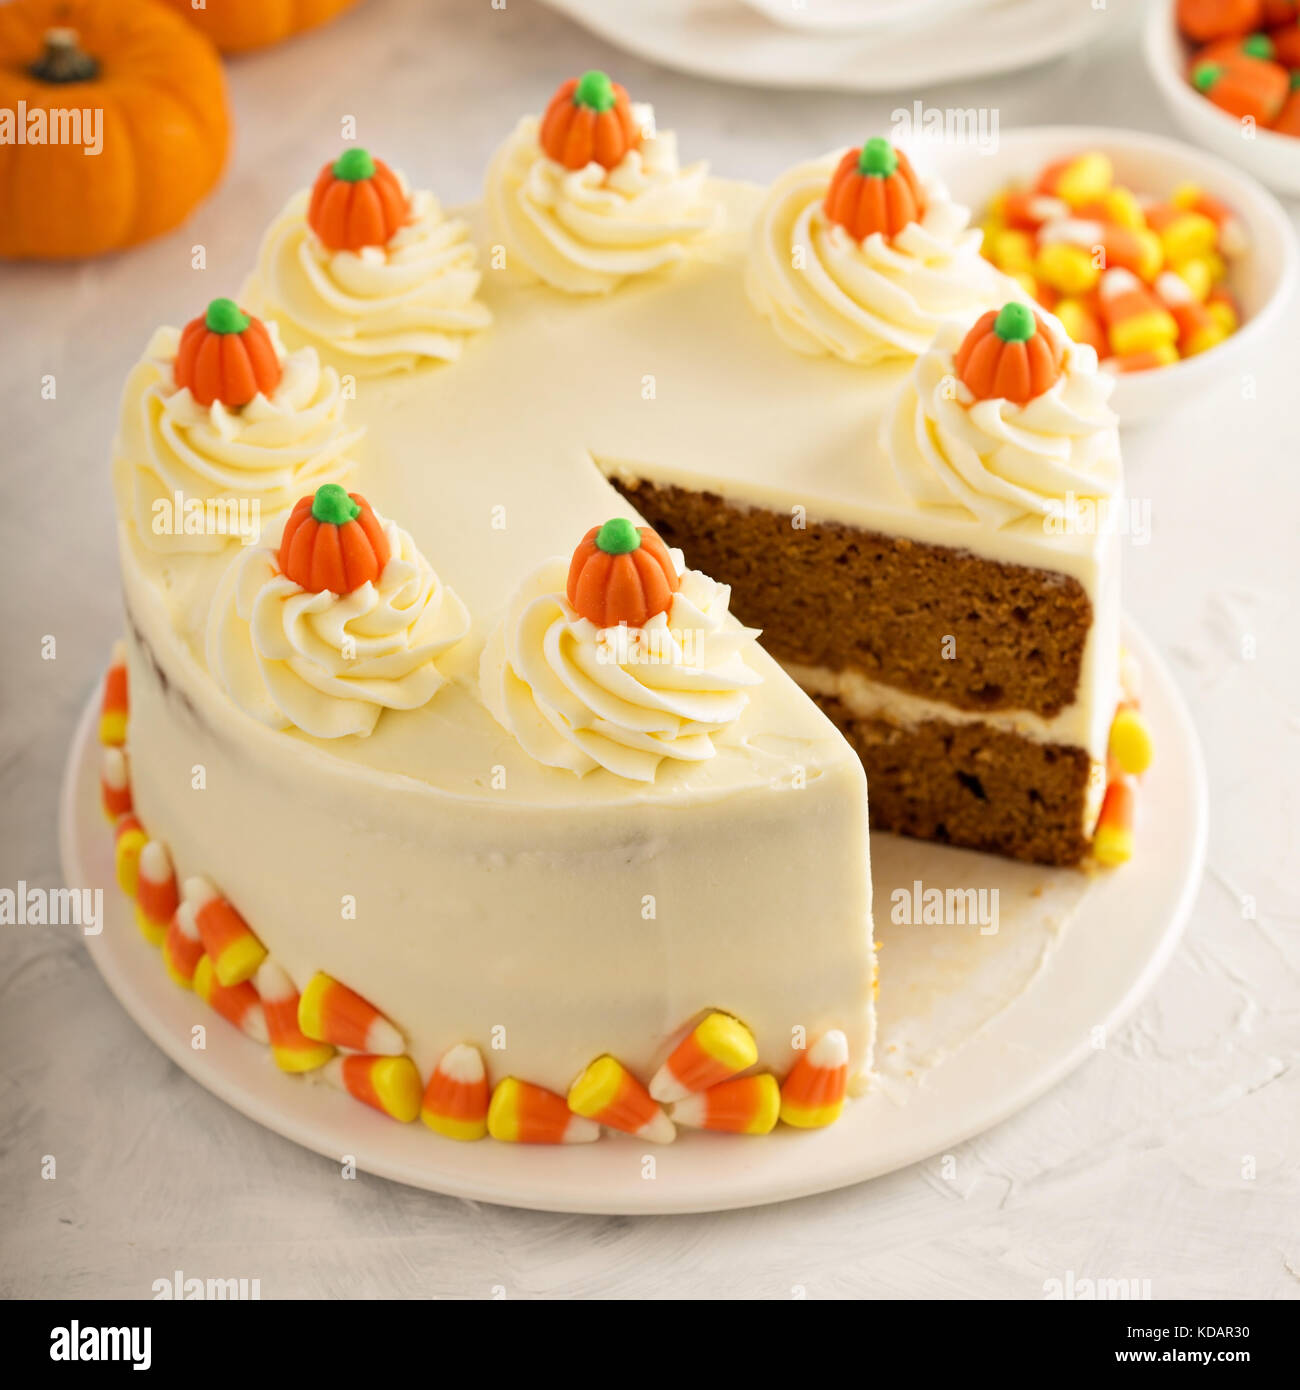 Pumpkin spice layered cake with cream cheese frosting - Stock Image